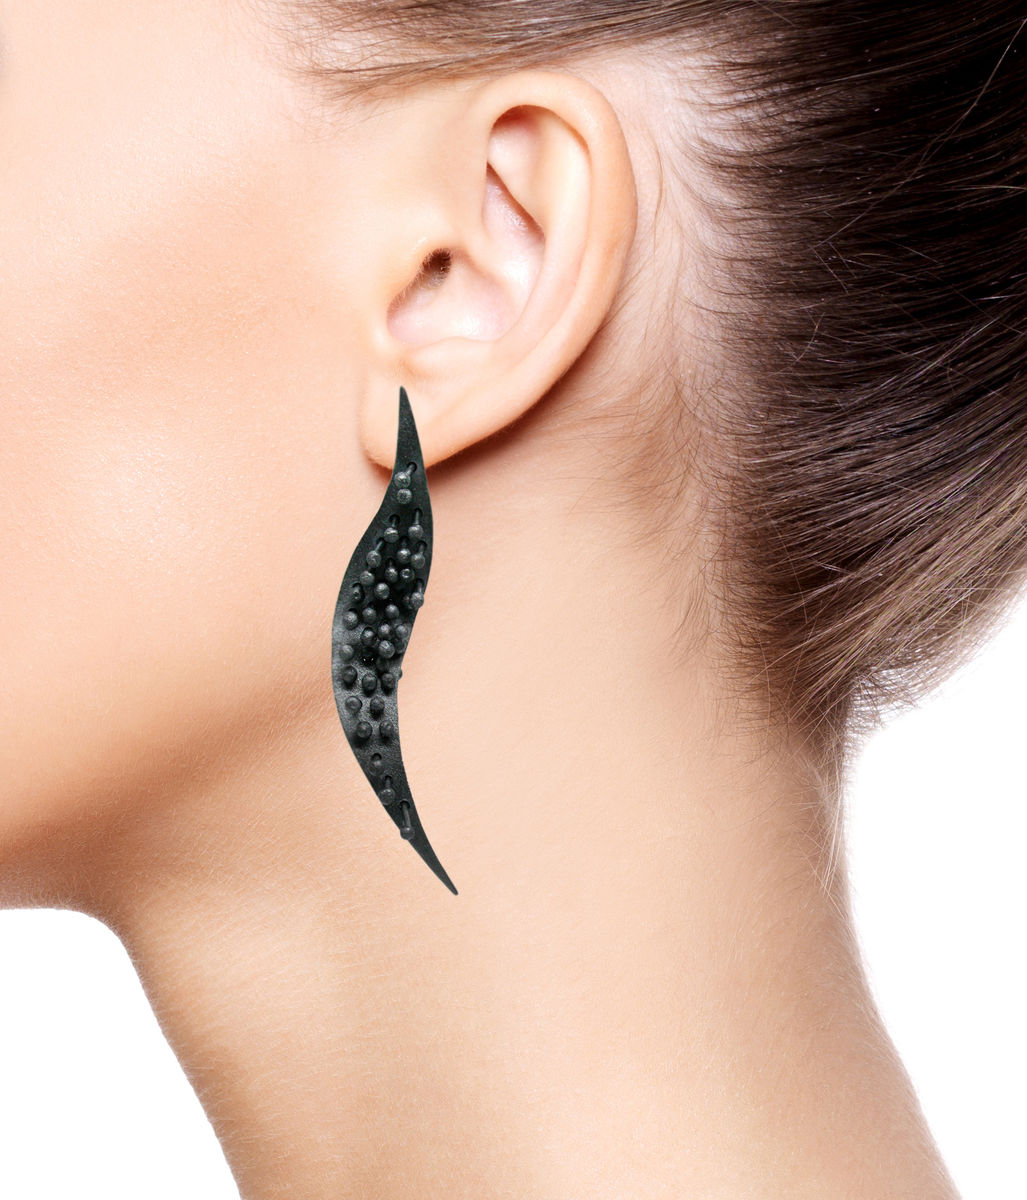 Mariposa Long Earrings Black  - product images  of